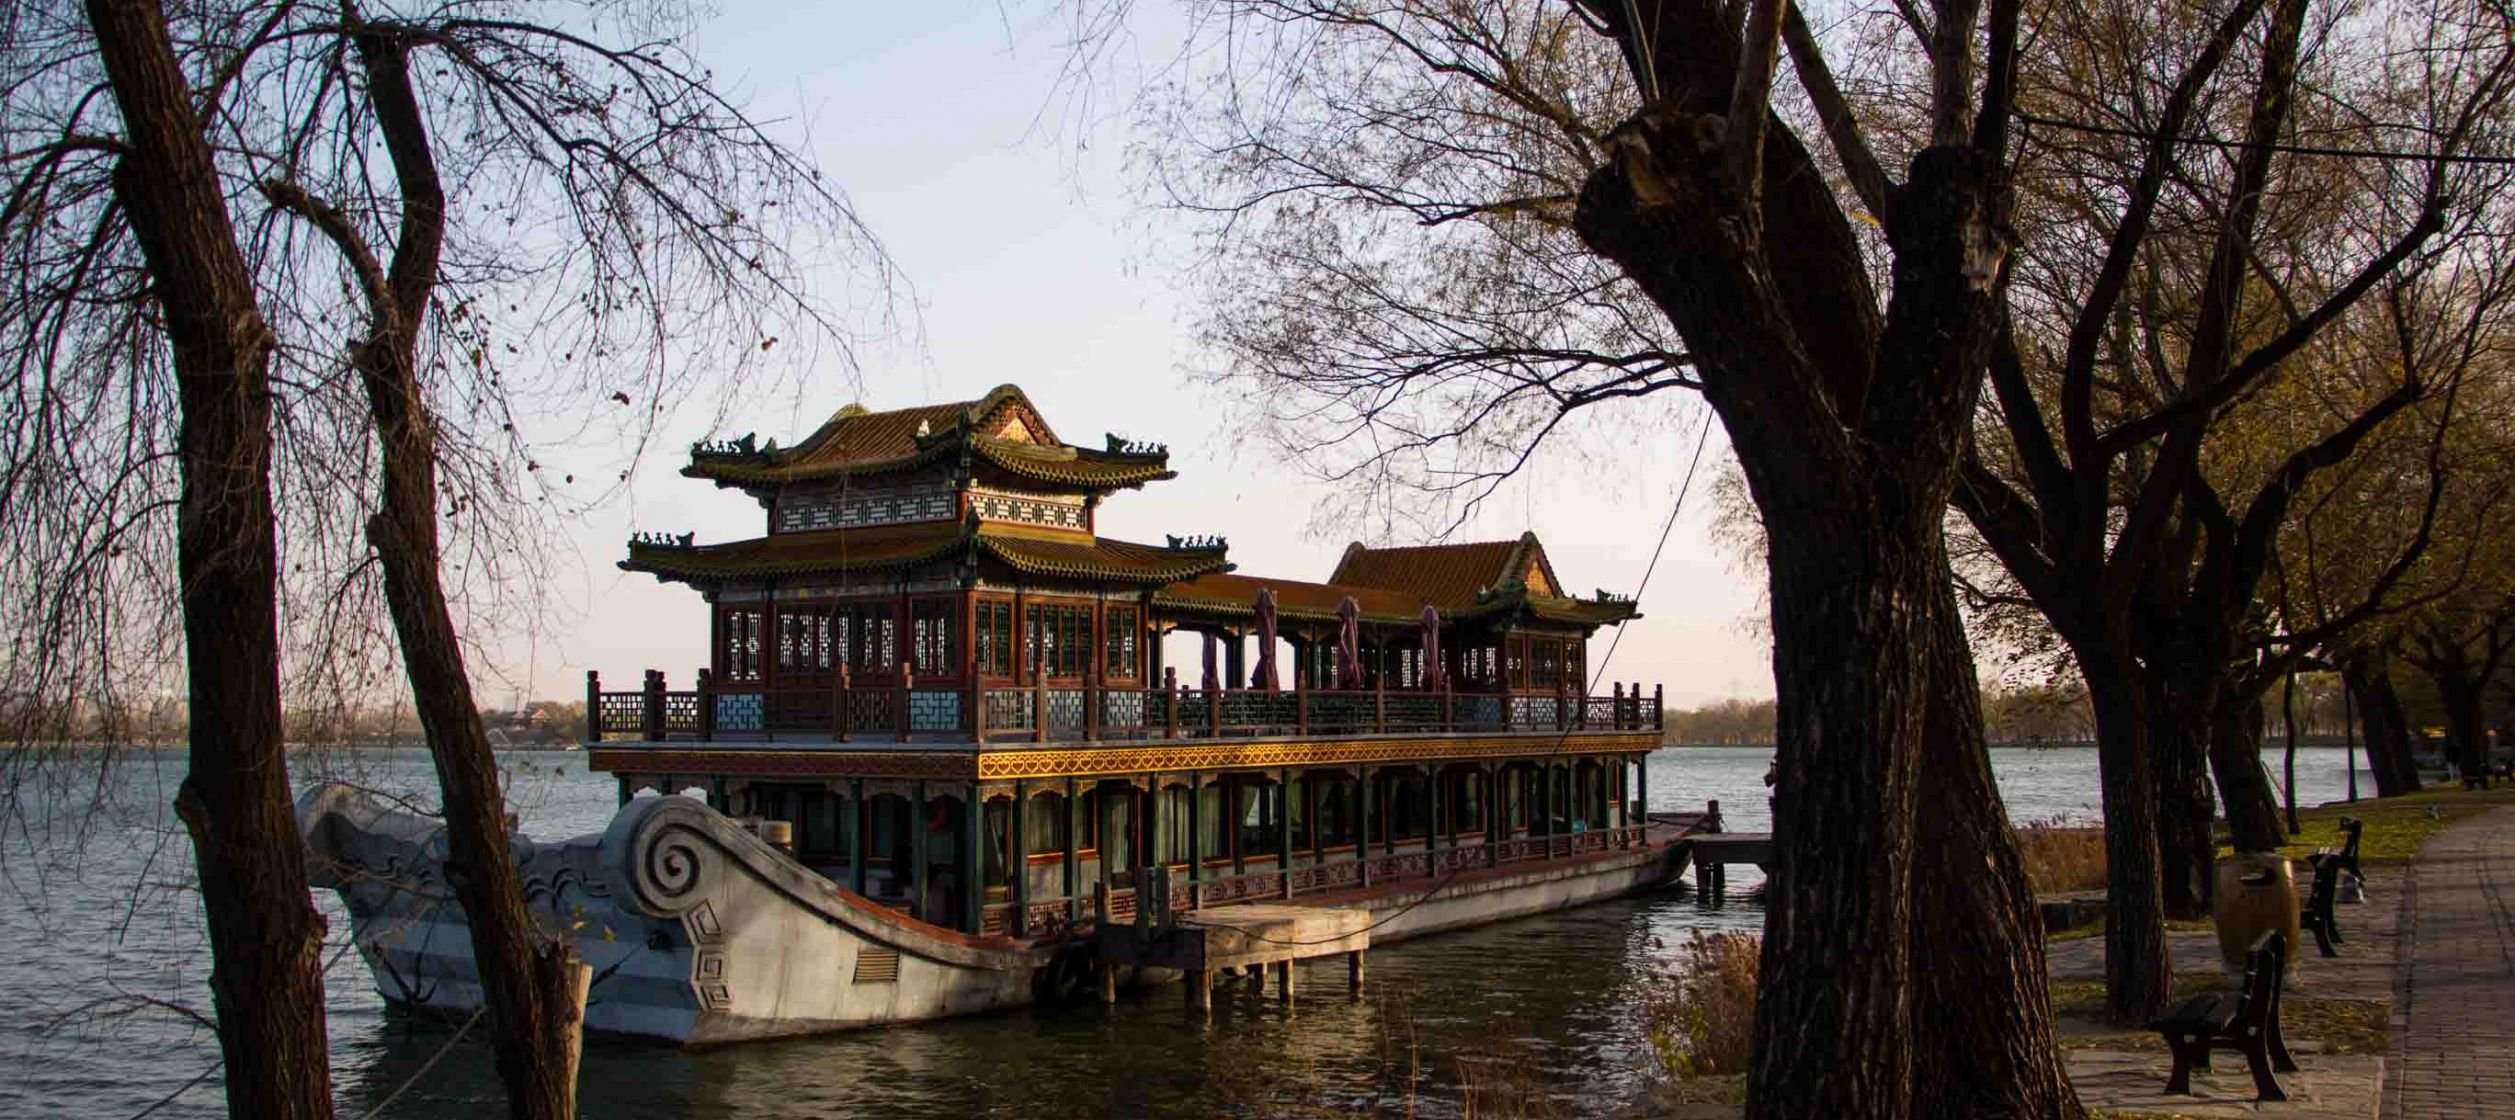 Boat at the Summer Palace